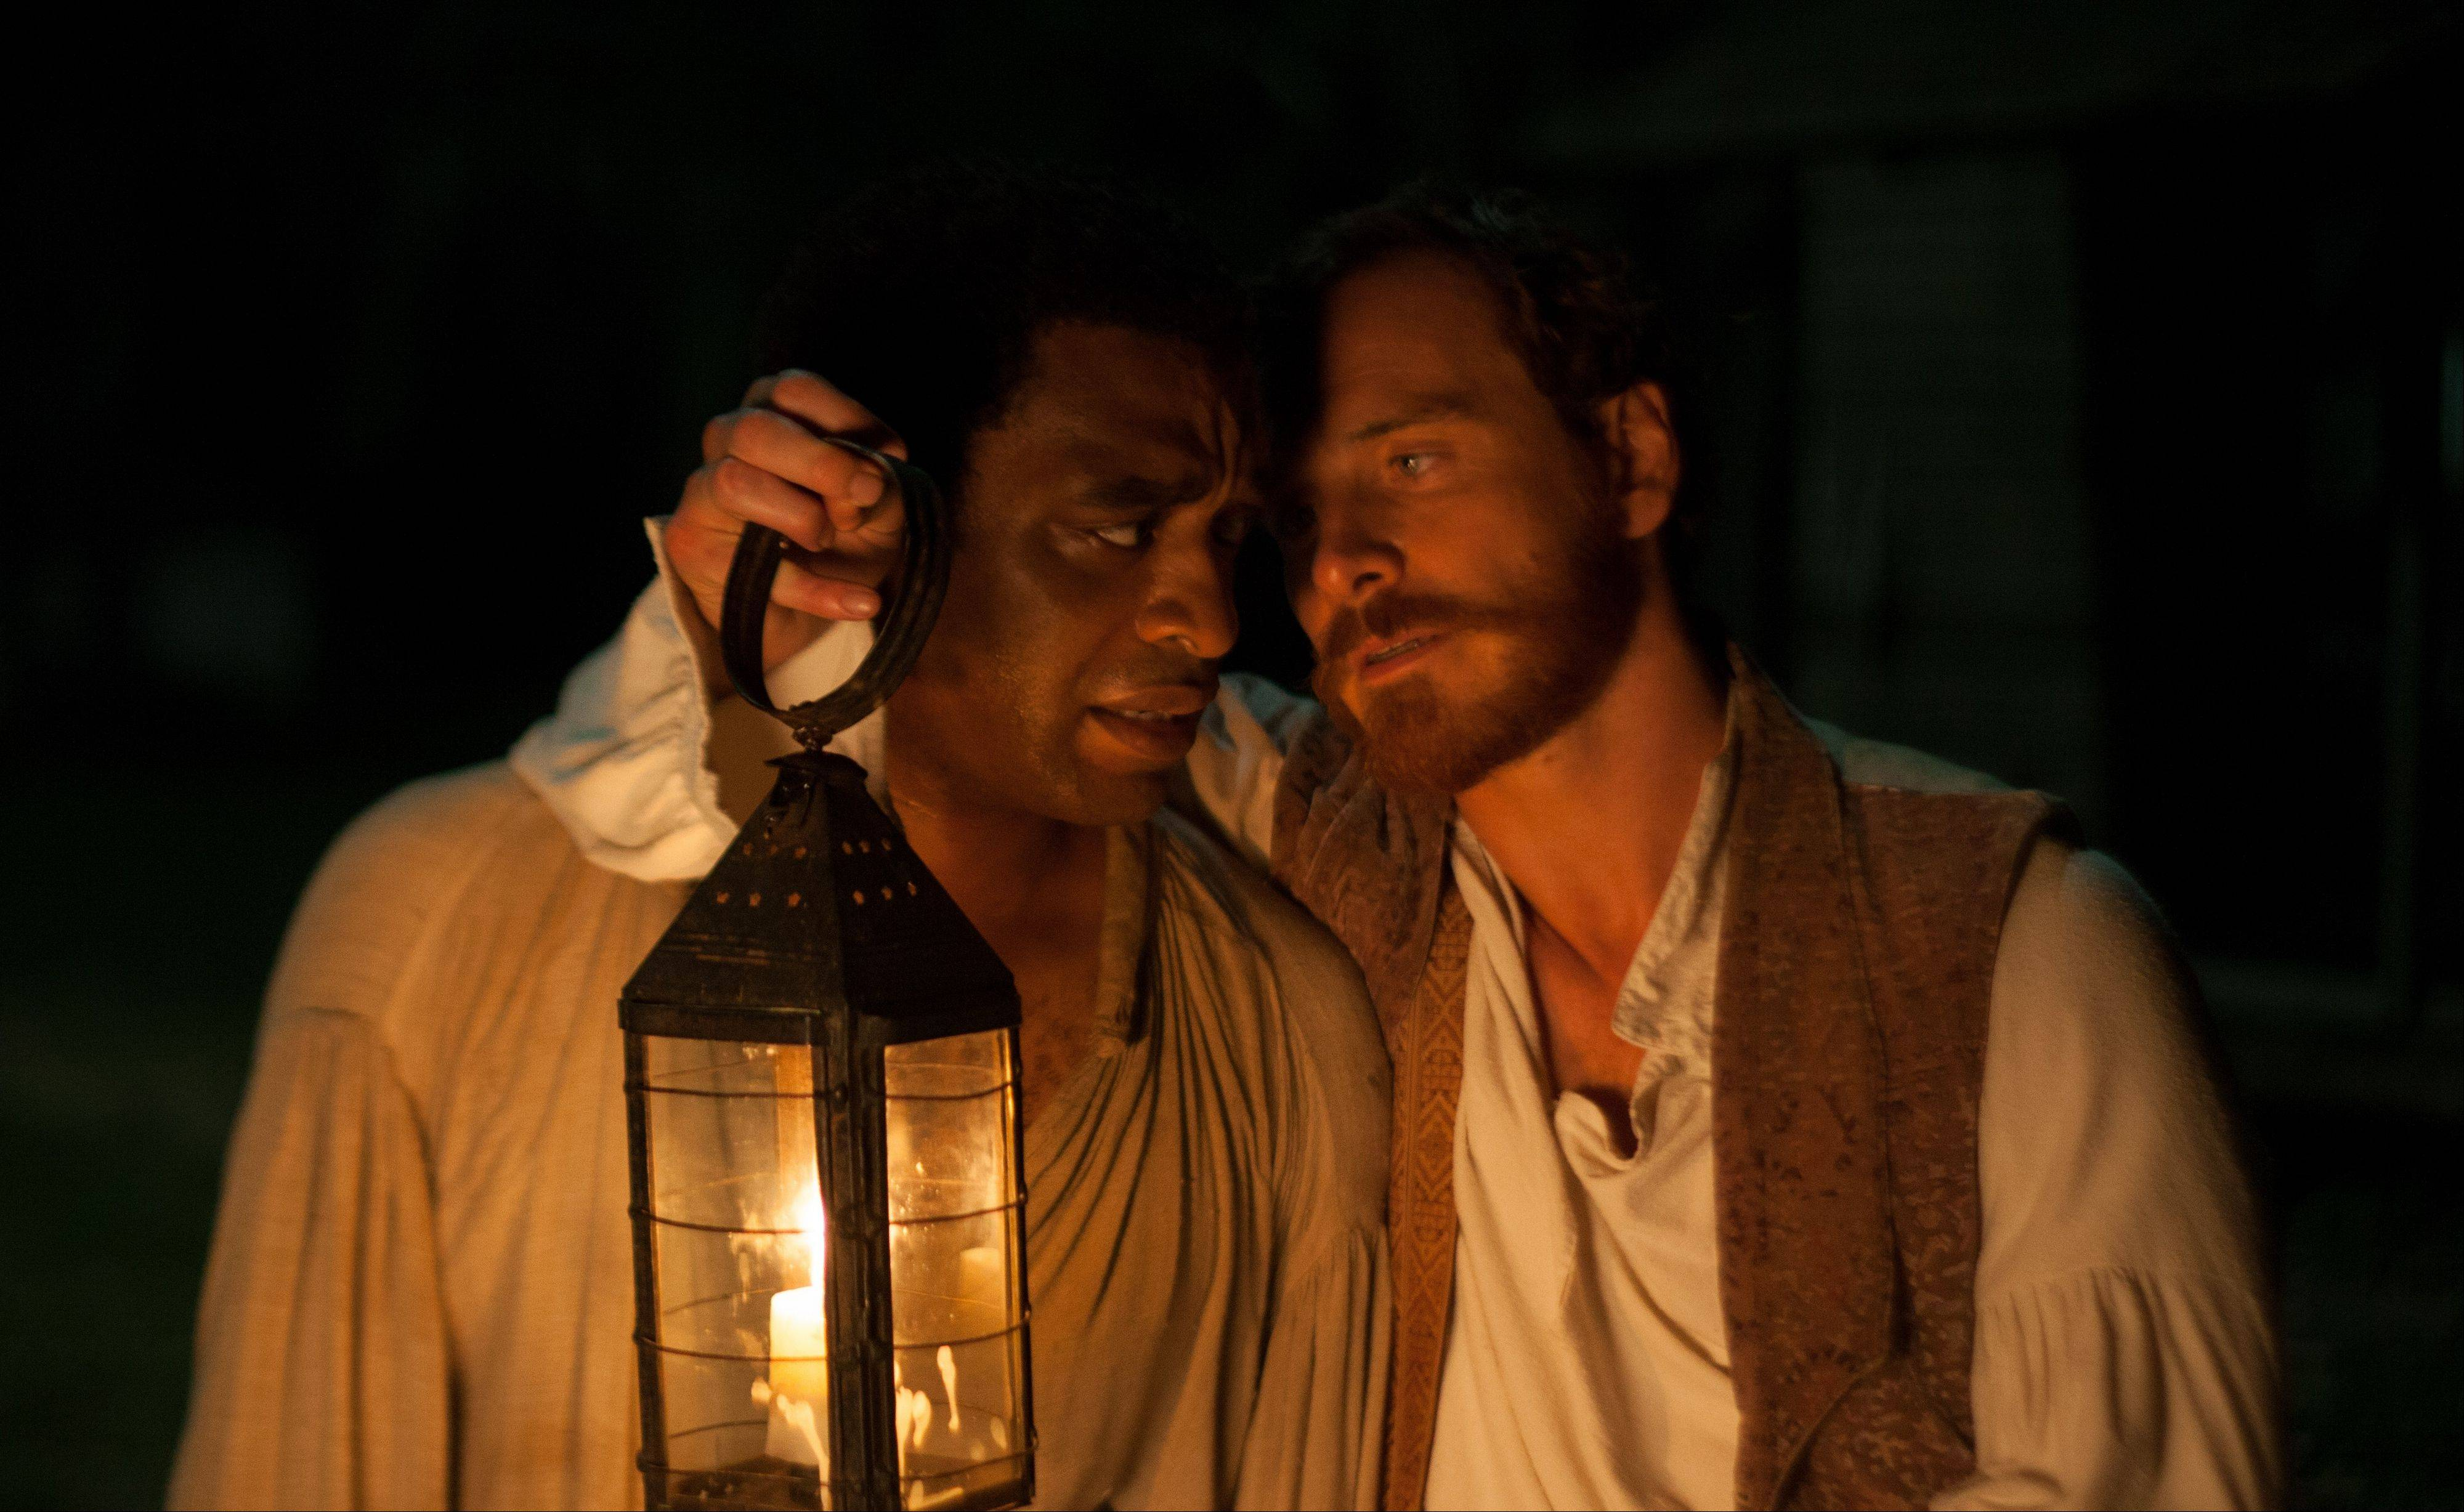 "Chicago Film Critics named Chiwetel Ejiofor, left, best actor of 2013 for his searing portrait of a kidnapped free man in Steve McQueen's ""12 Years A Slave,"" which won best picture. Best supporting actor nominee Michael Fassbender is at right."